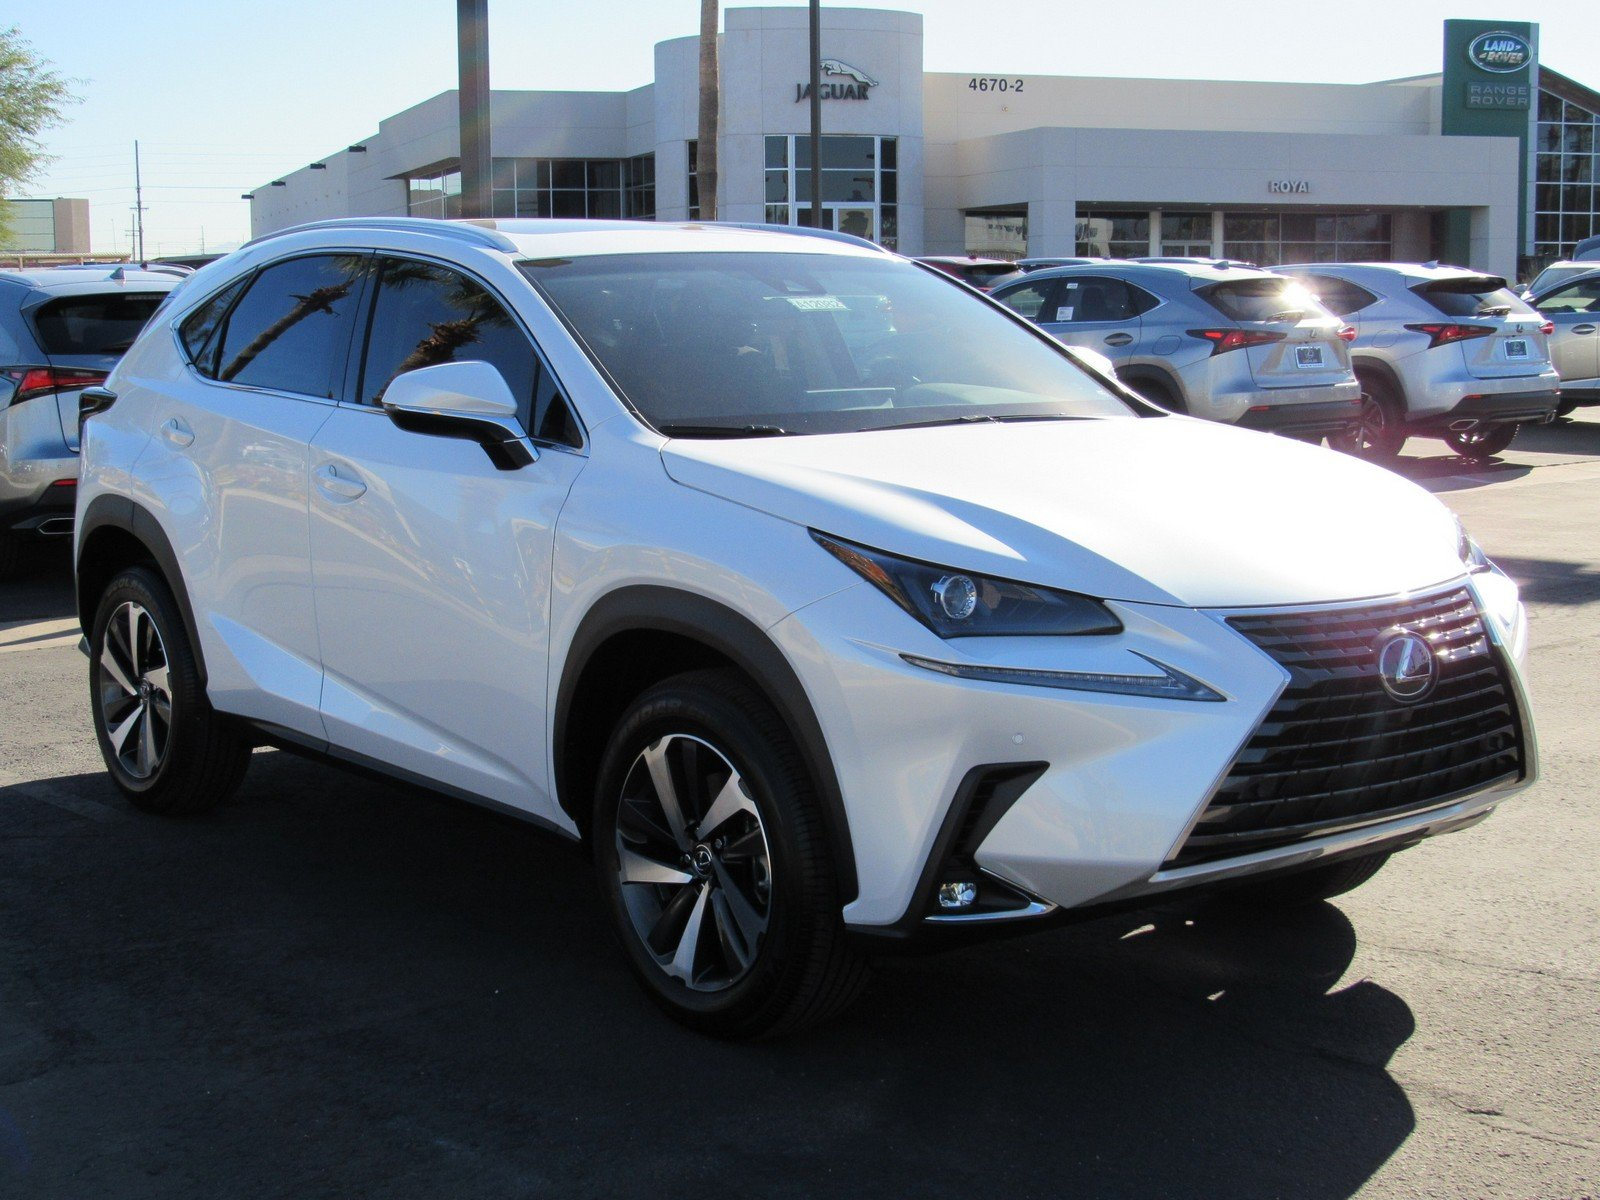 New 2019 Lexus NX 300 Sport Utility in Tucson #A12082 | Royal Automotive  Group